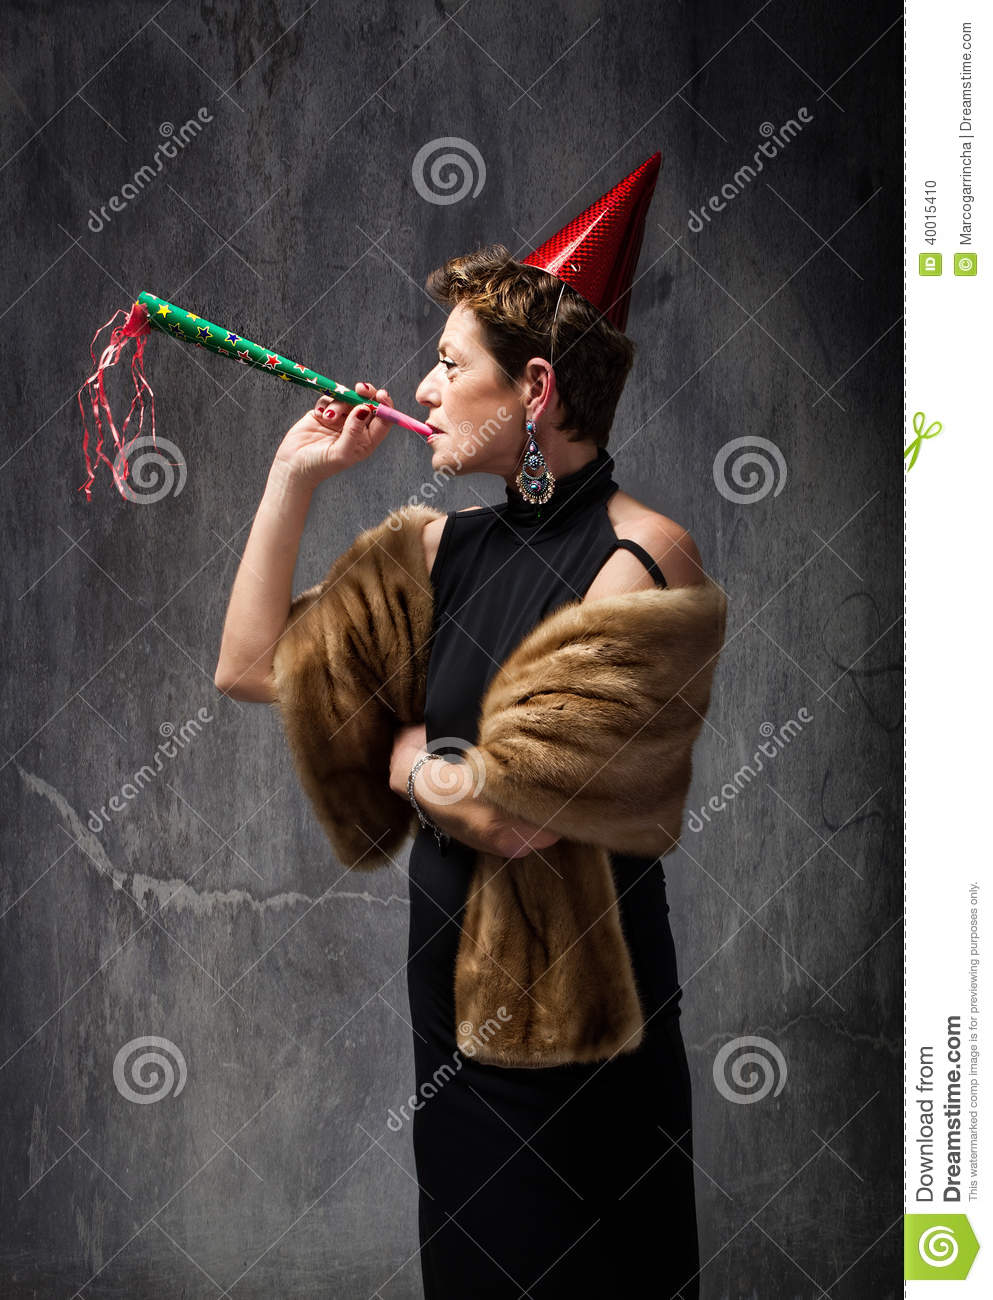 Senior Lady Ready For New Years Eve Party Stock Photo ...